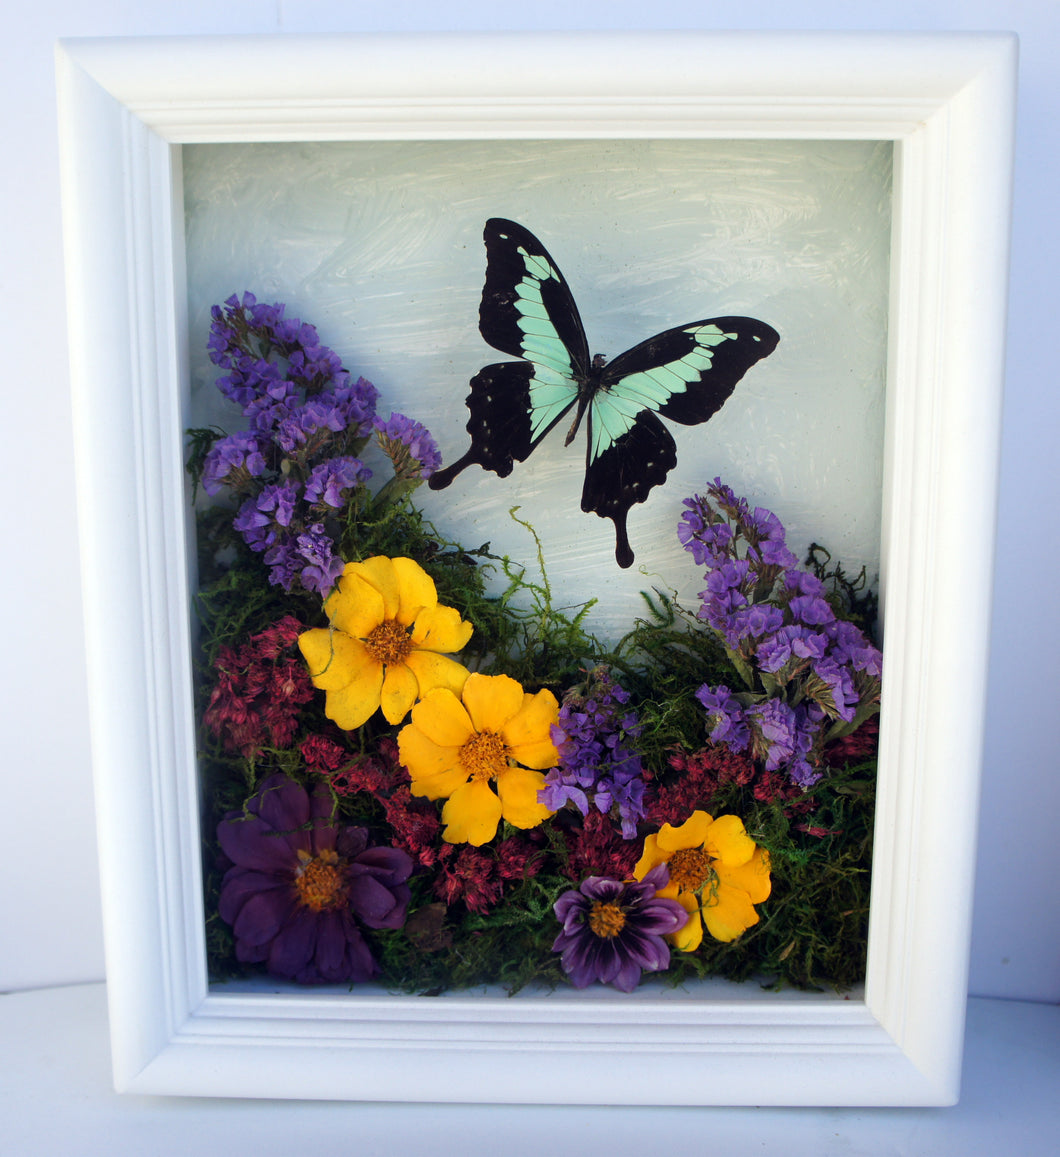 8x10 Flower Shadow Box with Papilio Phorcas